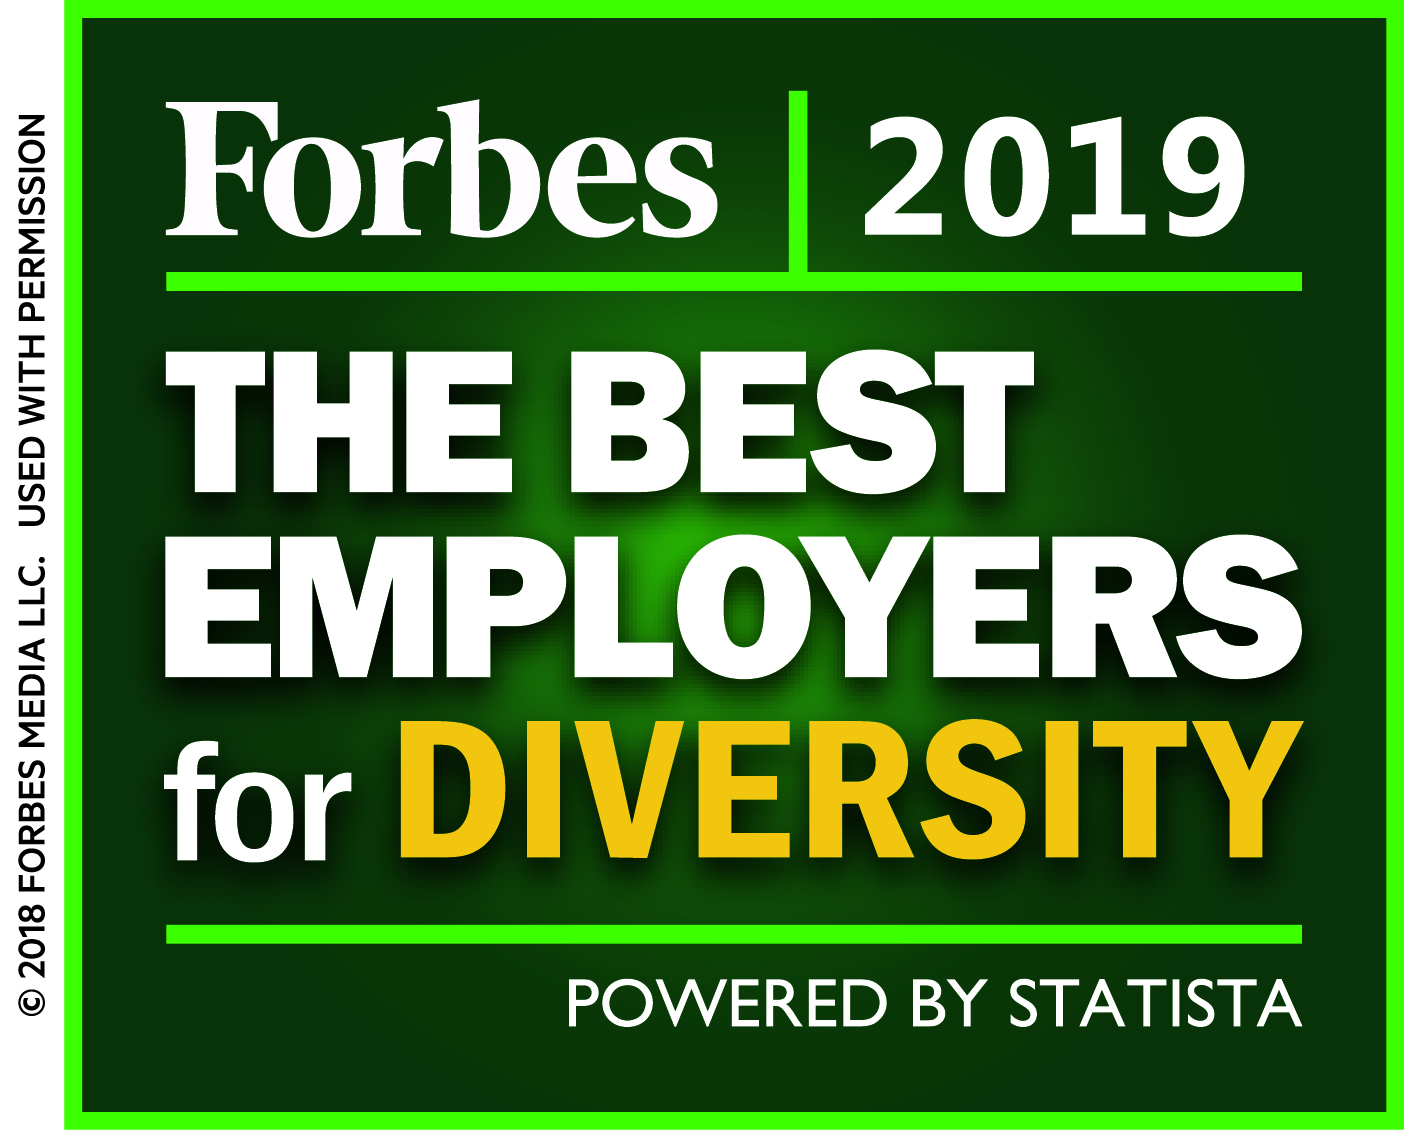 Forbes America's Best Employers for Diversity